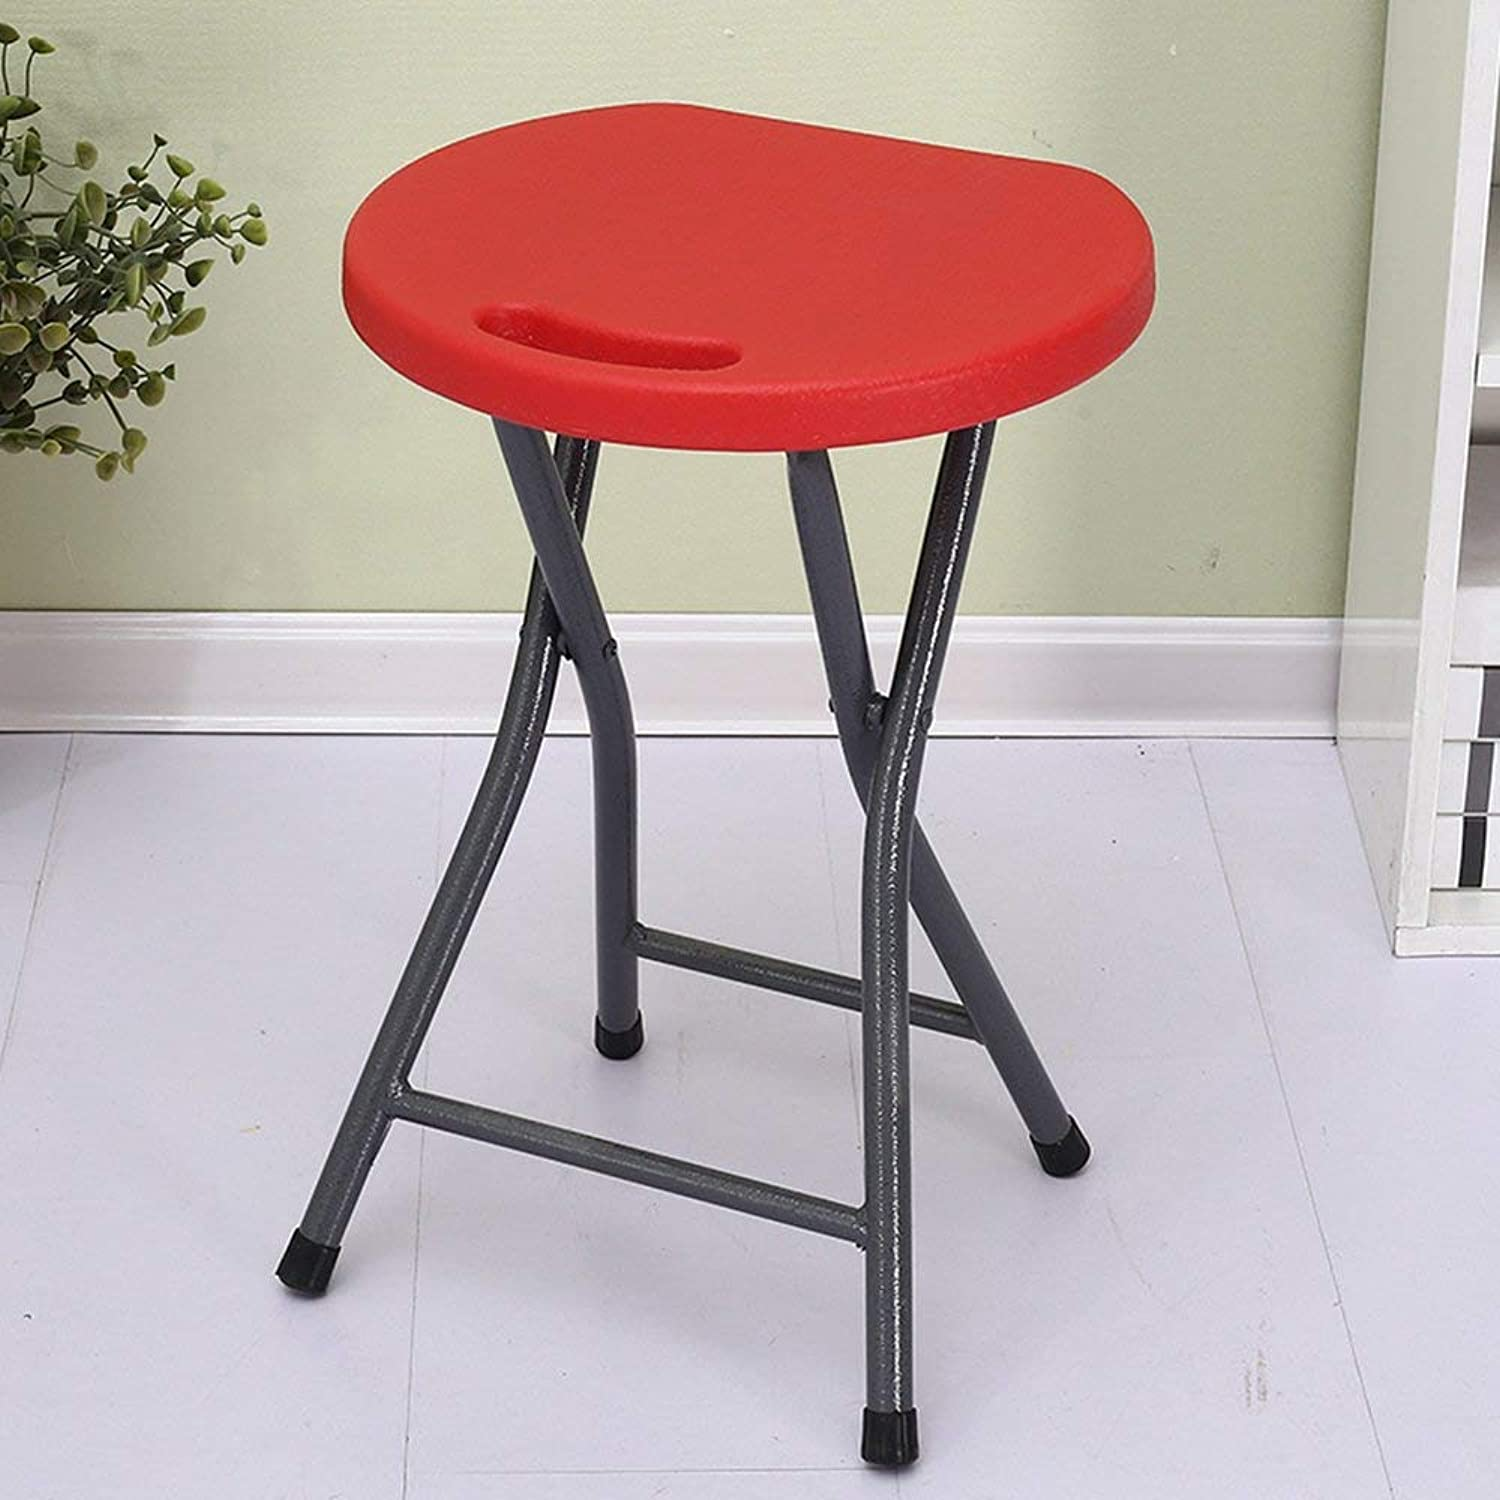 JZX Chair, Bar Stool, Foldable and Easy to Carry Utility Chair